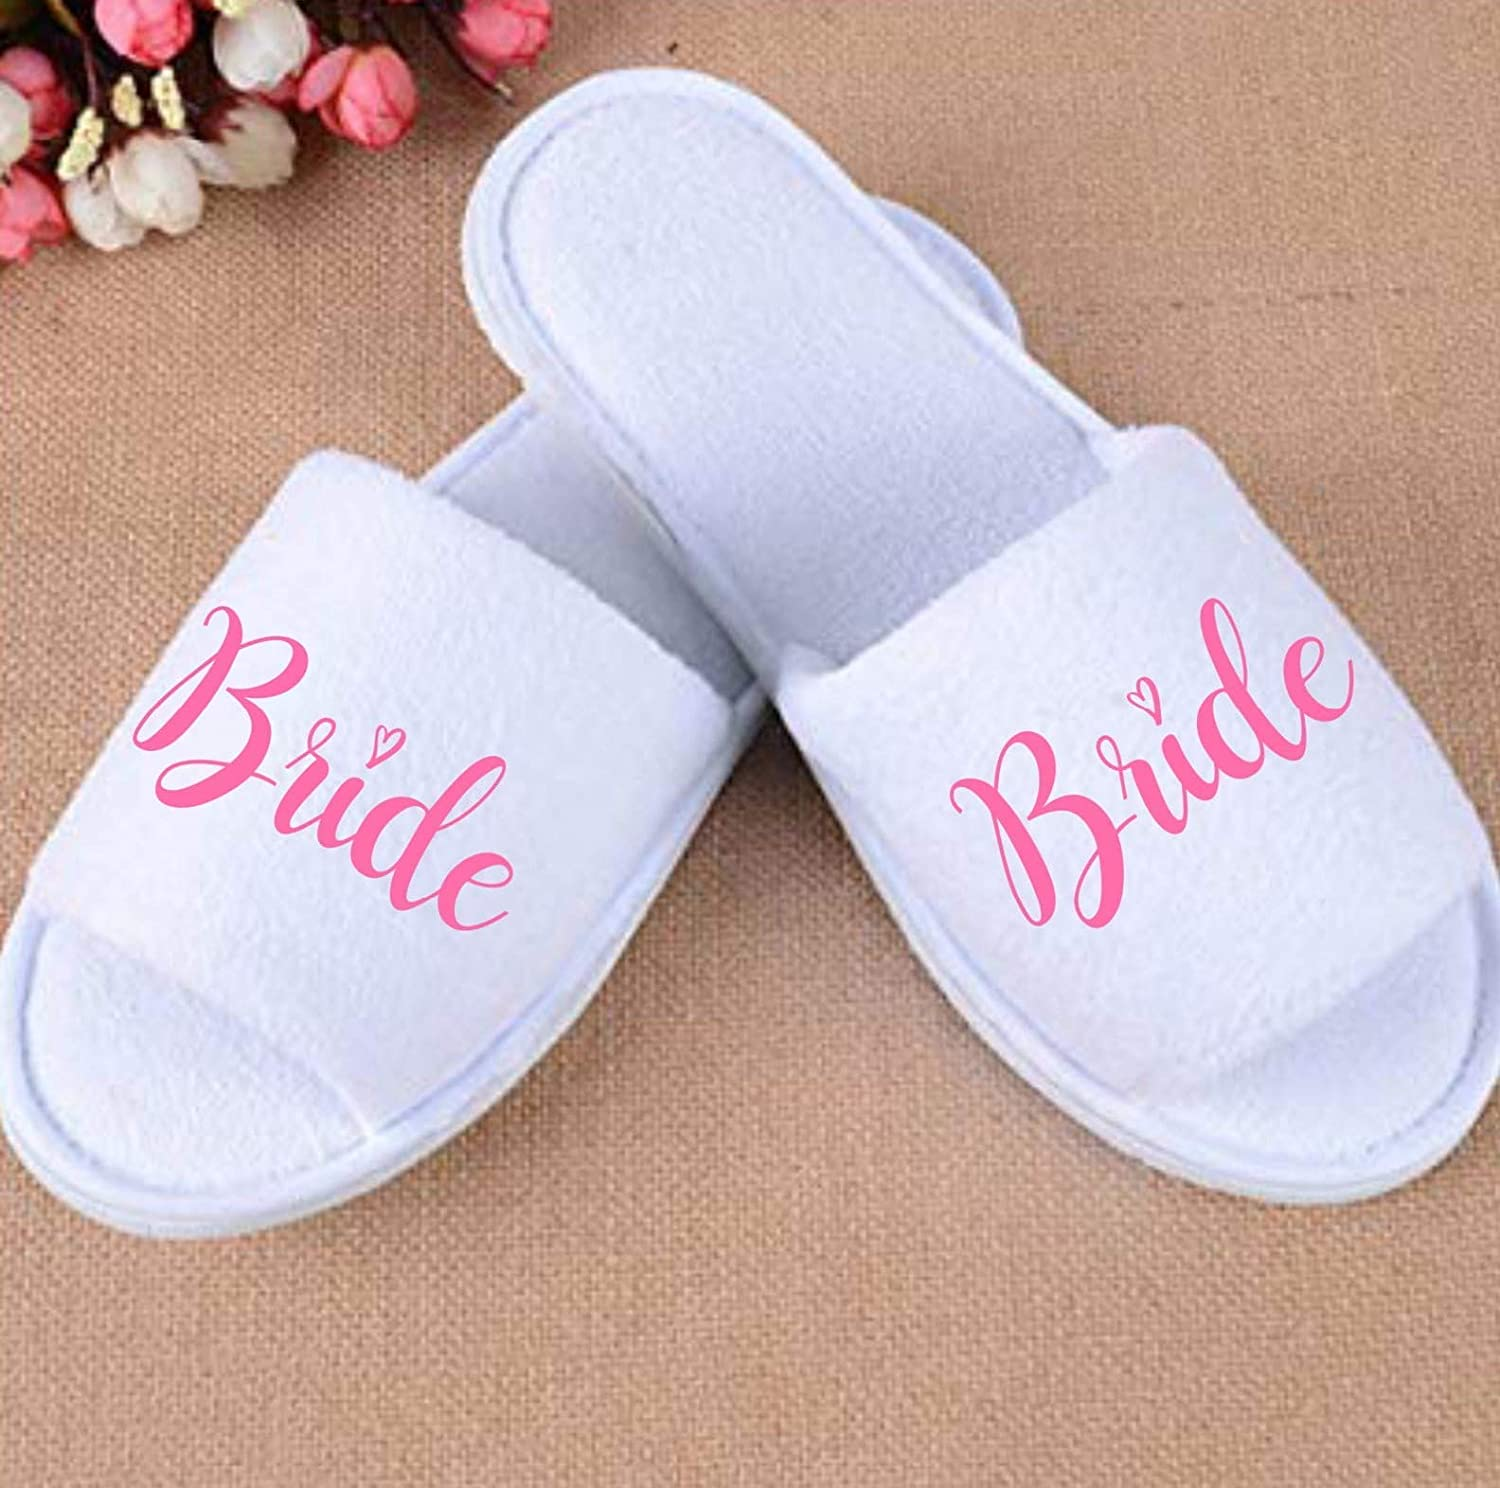 quality products outlet boutique half price Bridal Party Spa Slippers: Amazon.co.uk: Handmade